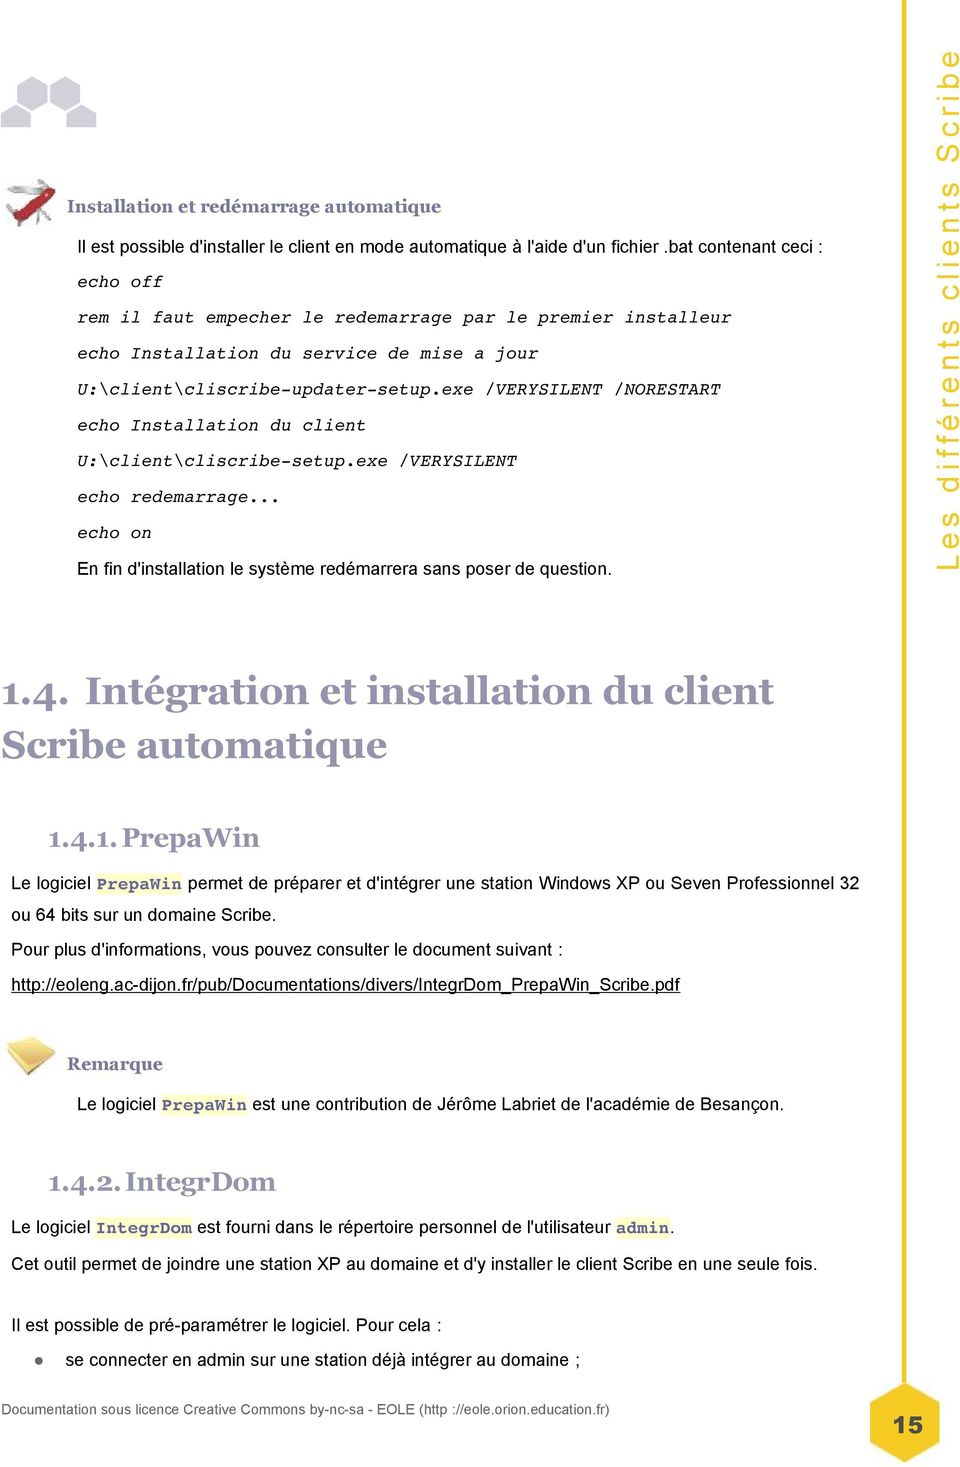 exe /VERYSILENT /NORESTART echo Installation du client U:\client\cliscribe setup.exe /VERYSILENT echo redemarrage... echo on En fin d'installation le système redémarrera sans poser de question. 1.4.